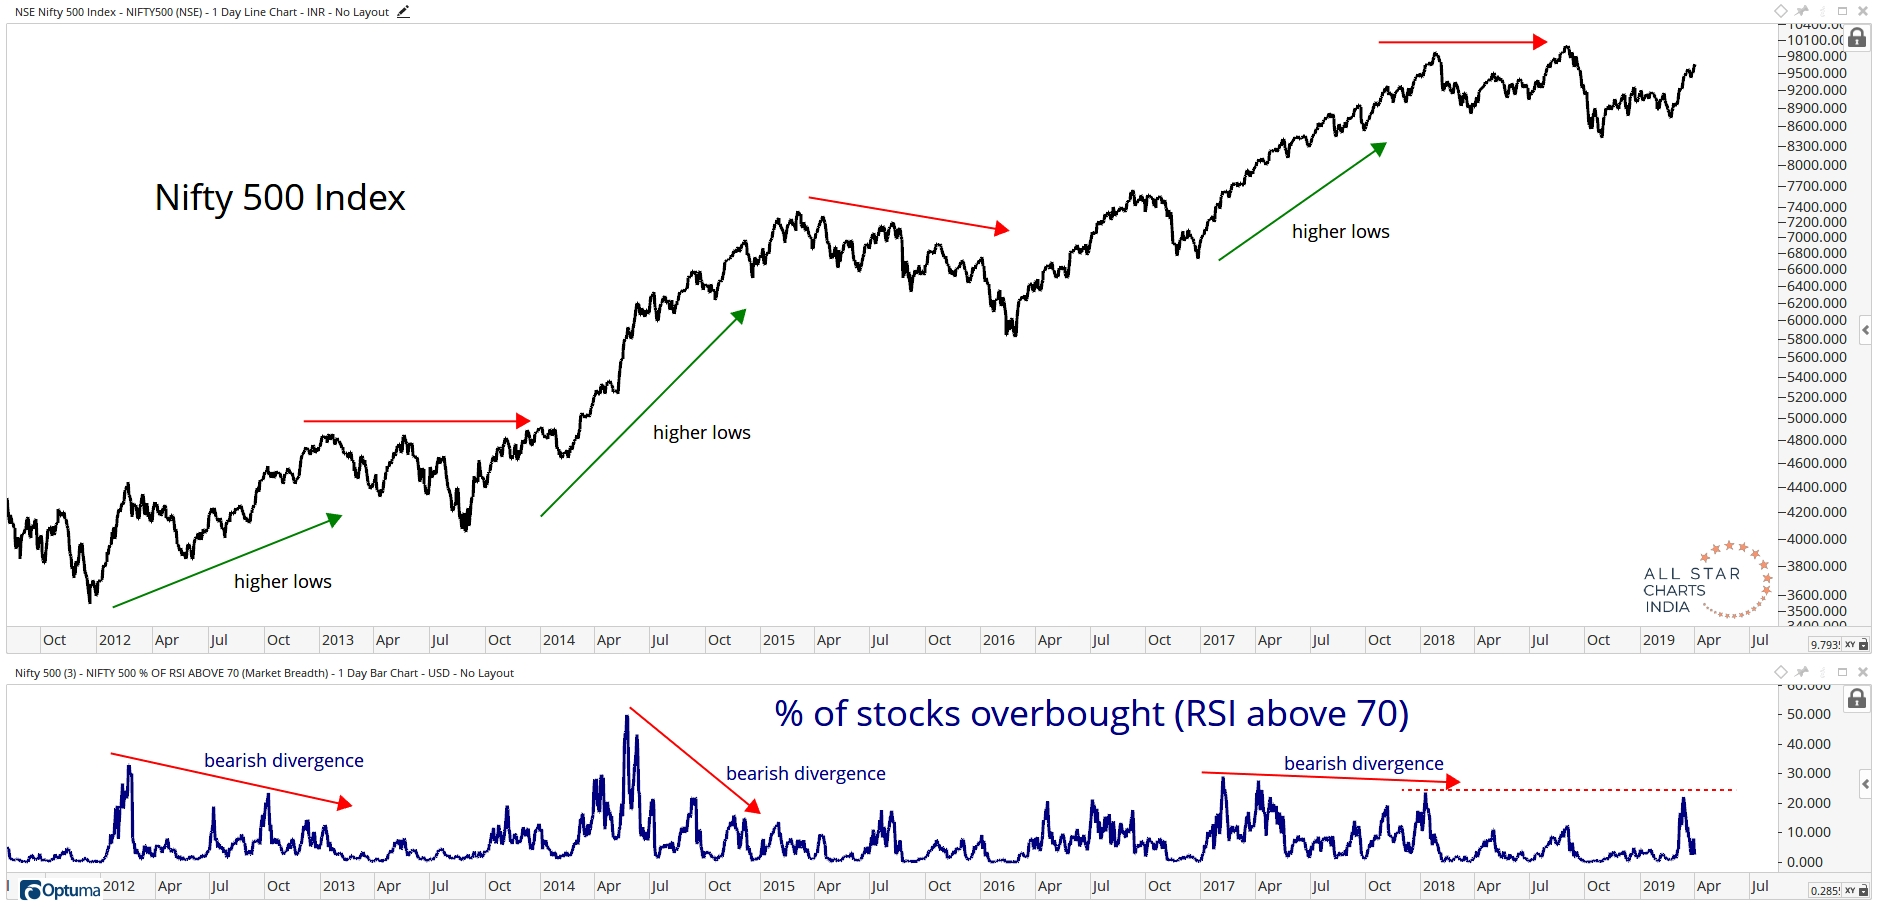 Chart of The Week] Breadth of Momentum Struggles At '18 Highs - All